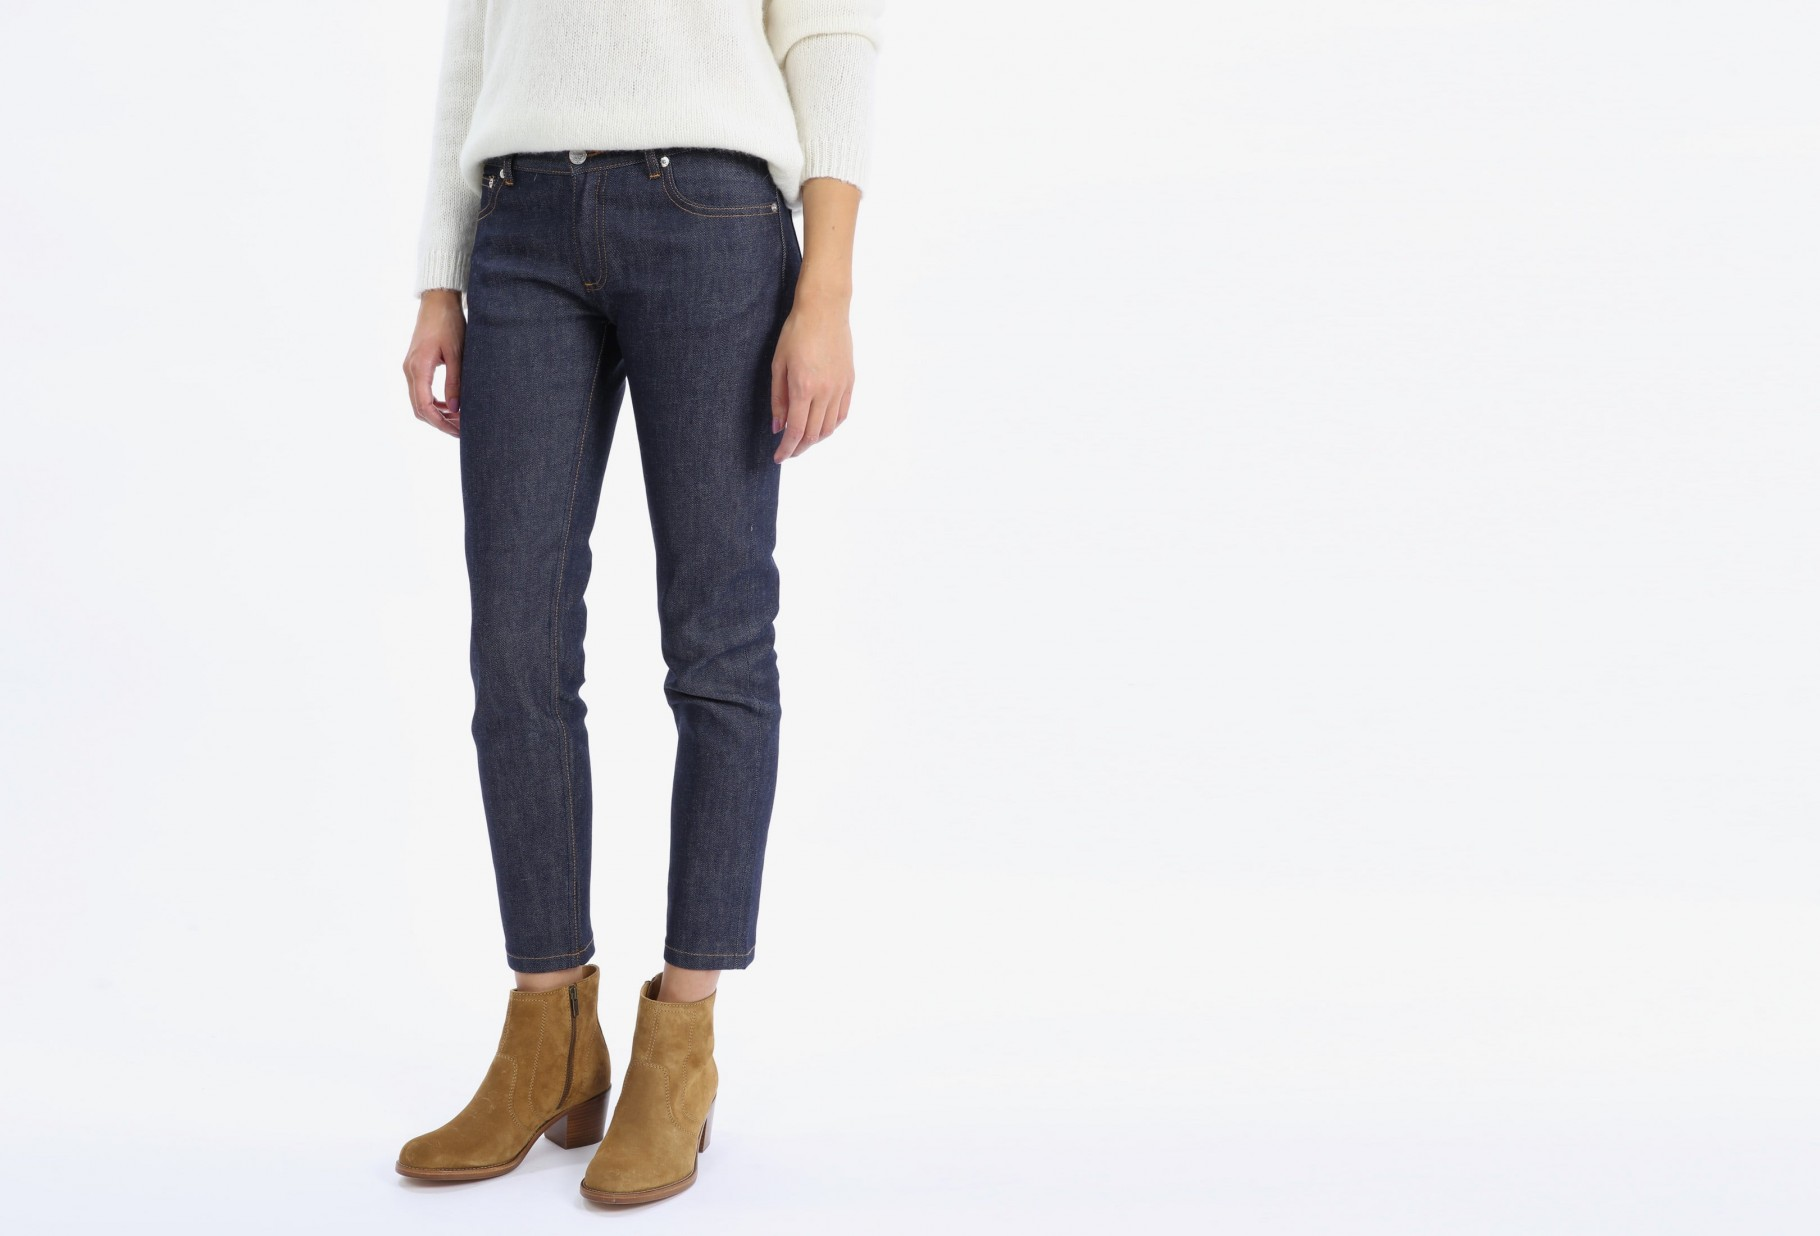 A.P.C. FOR WOMAN / Jean etroit court Indigo